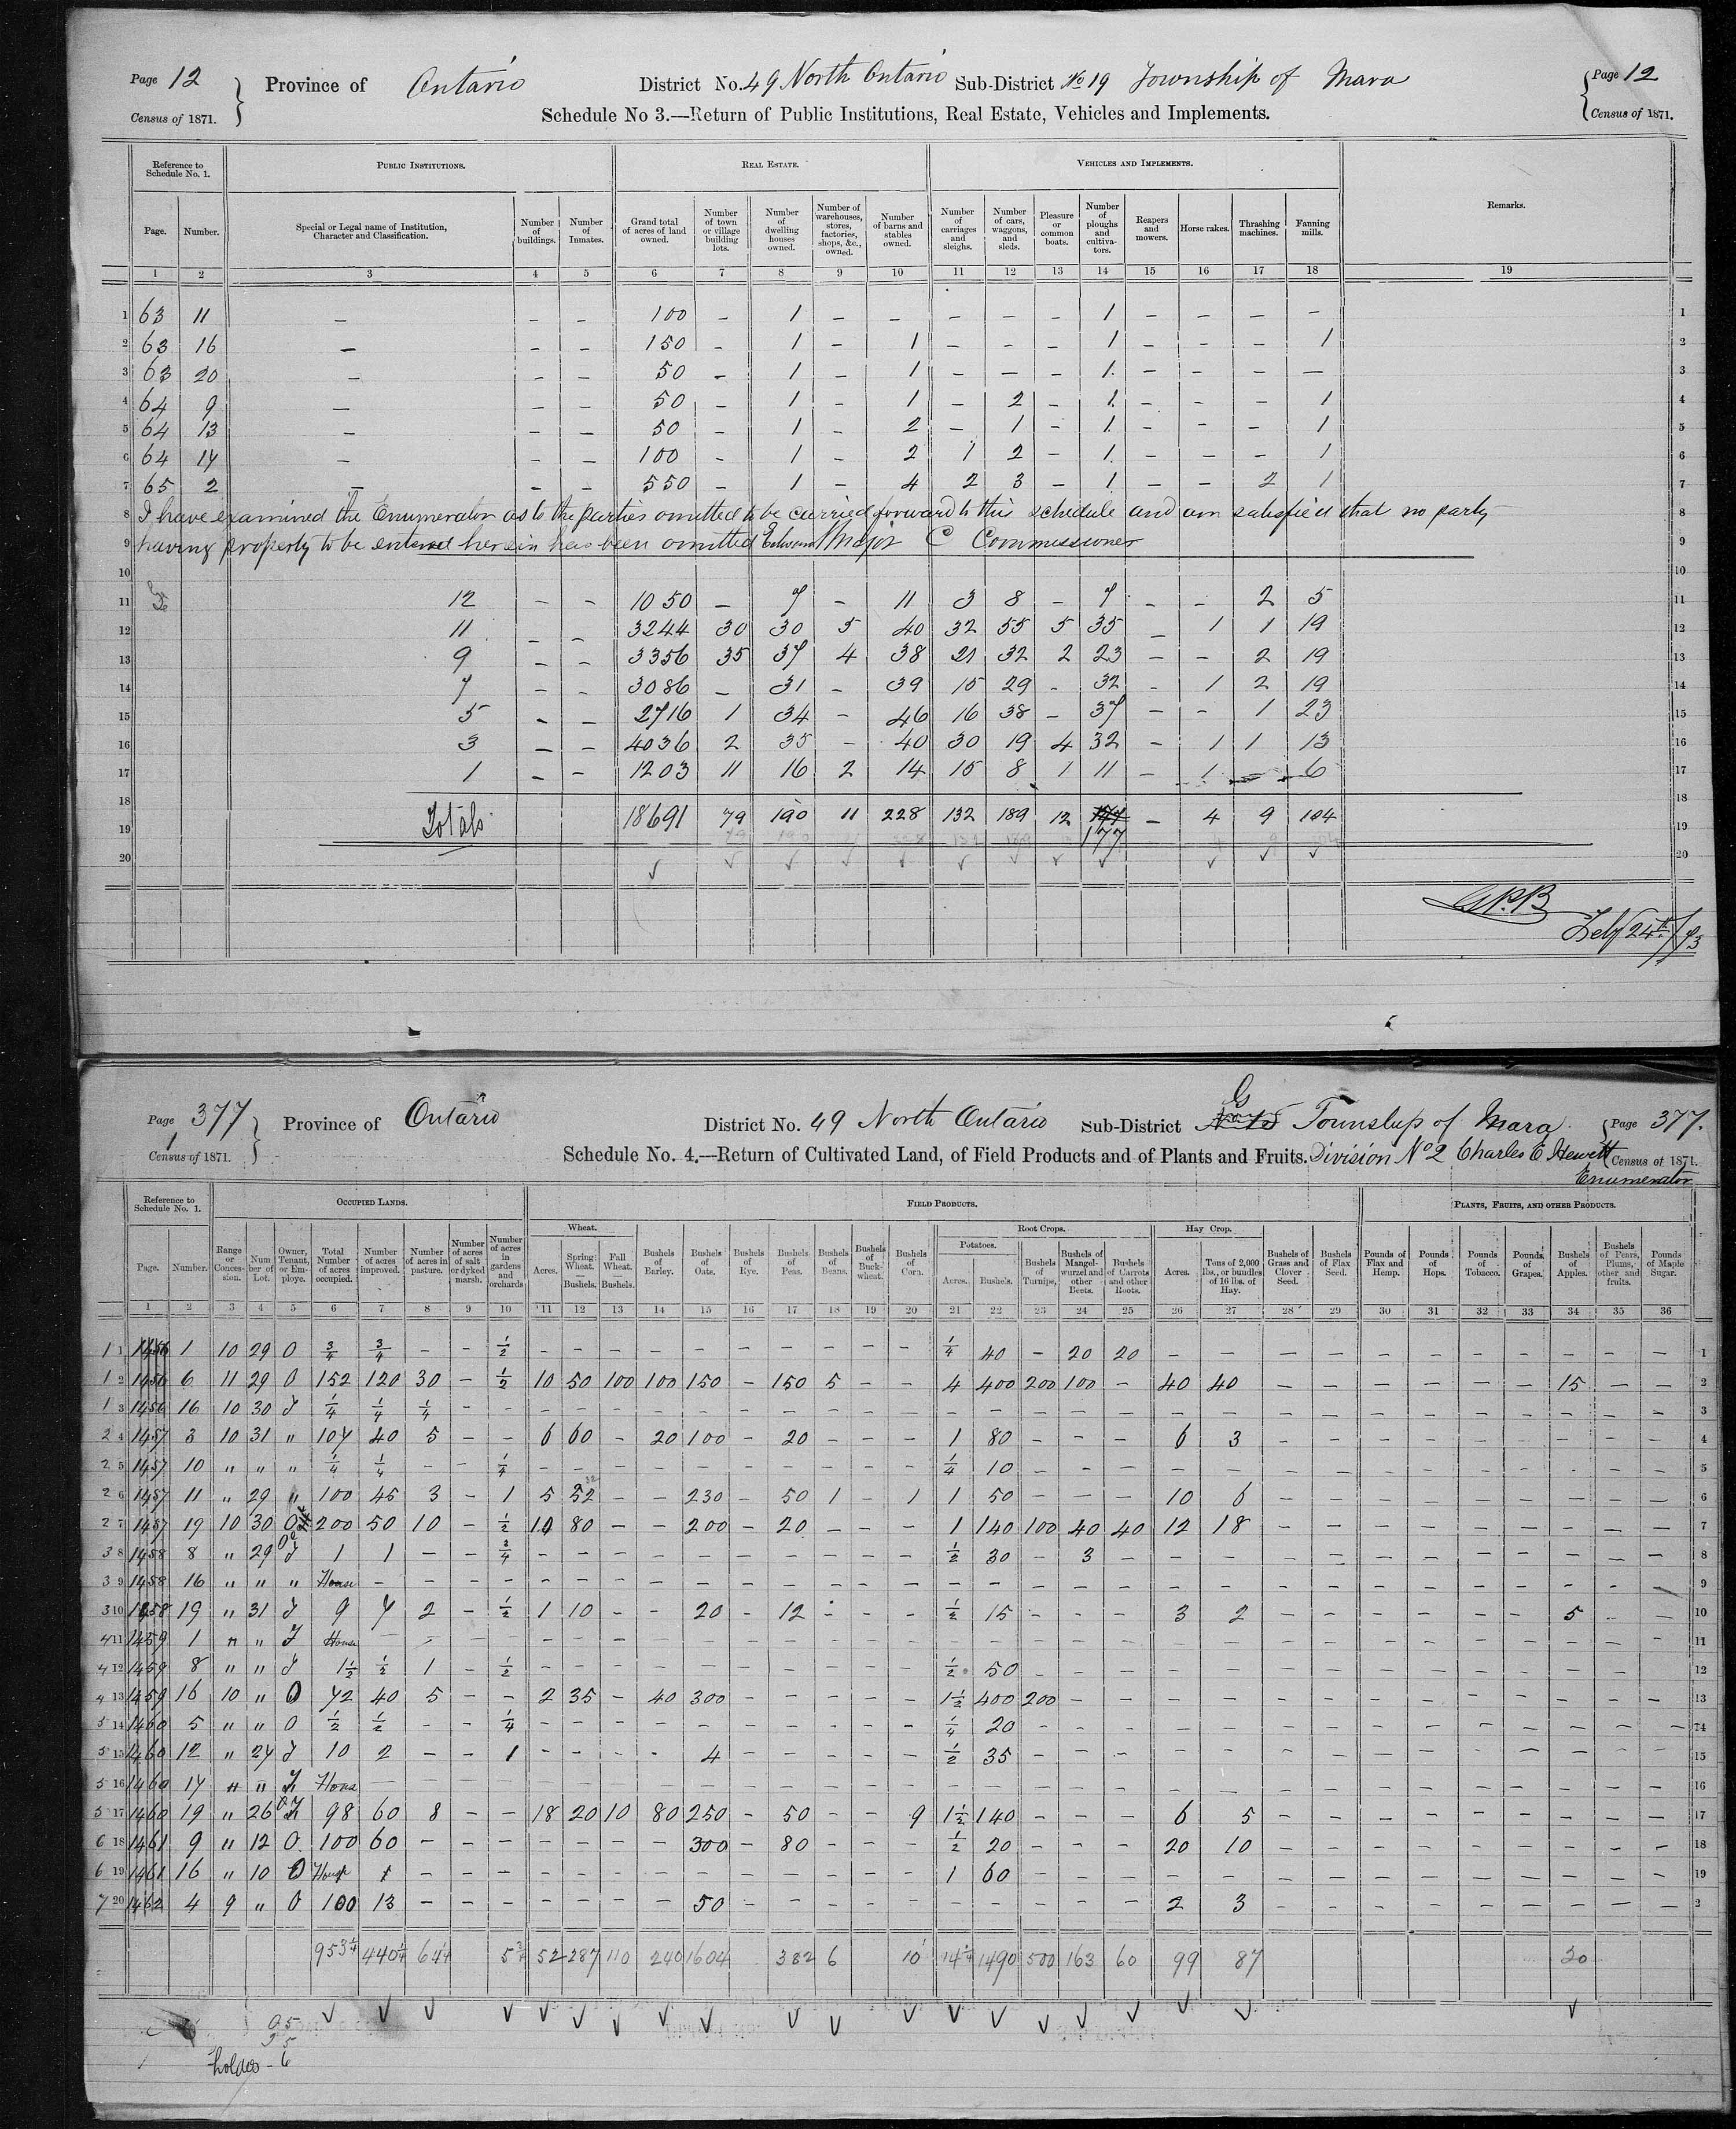 Title: Census of Canada, 1871 - Mikan Number: 142105 - Microform: c-9977